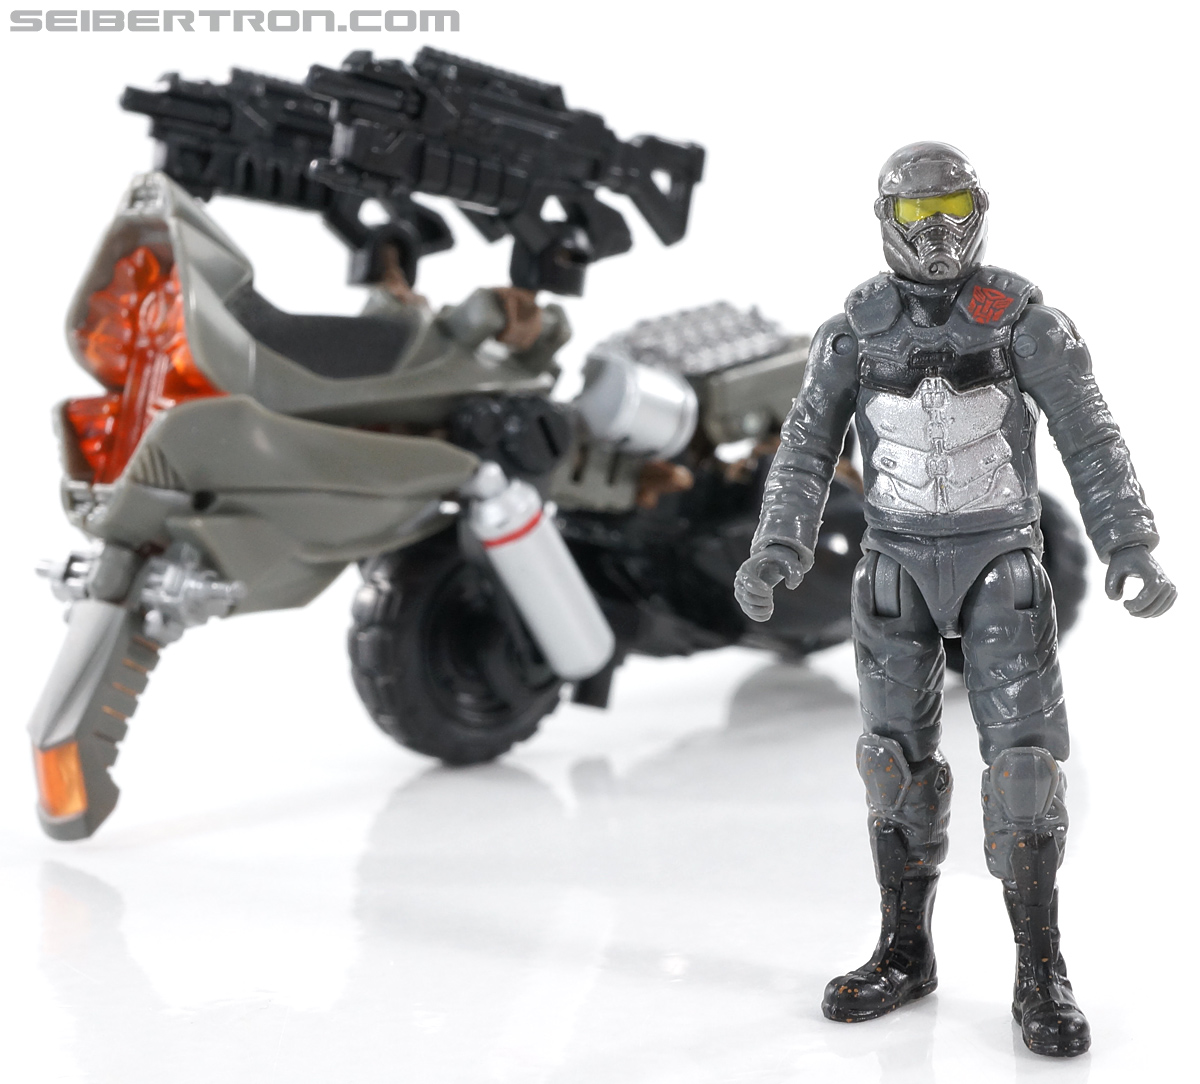 Transformers Dark of the Moon Spike Witwicky (Image #59 of 70)